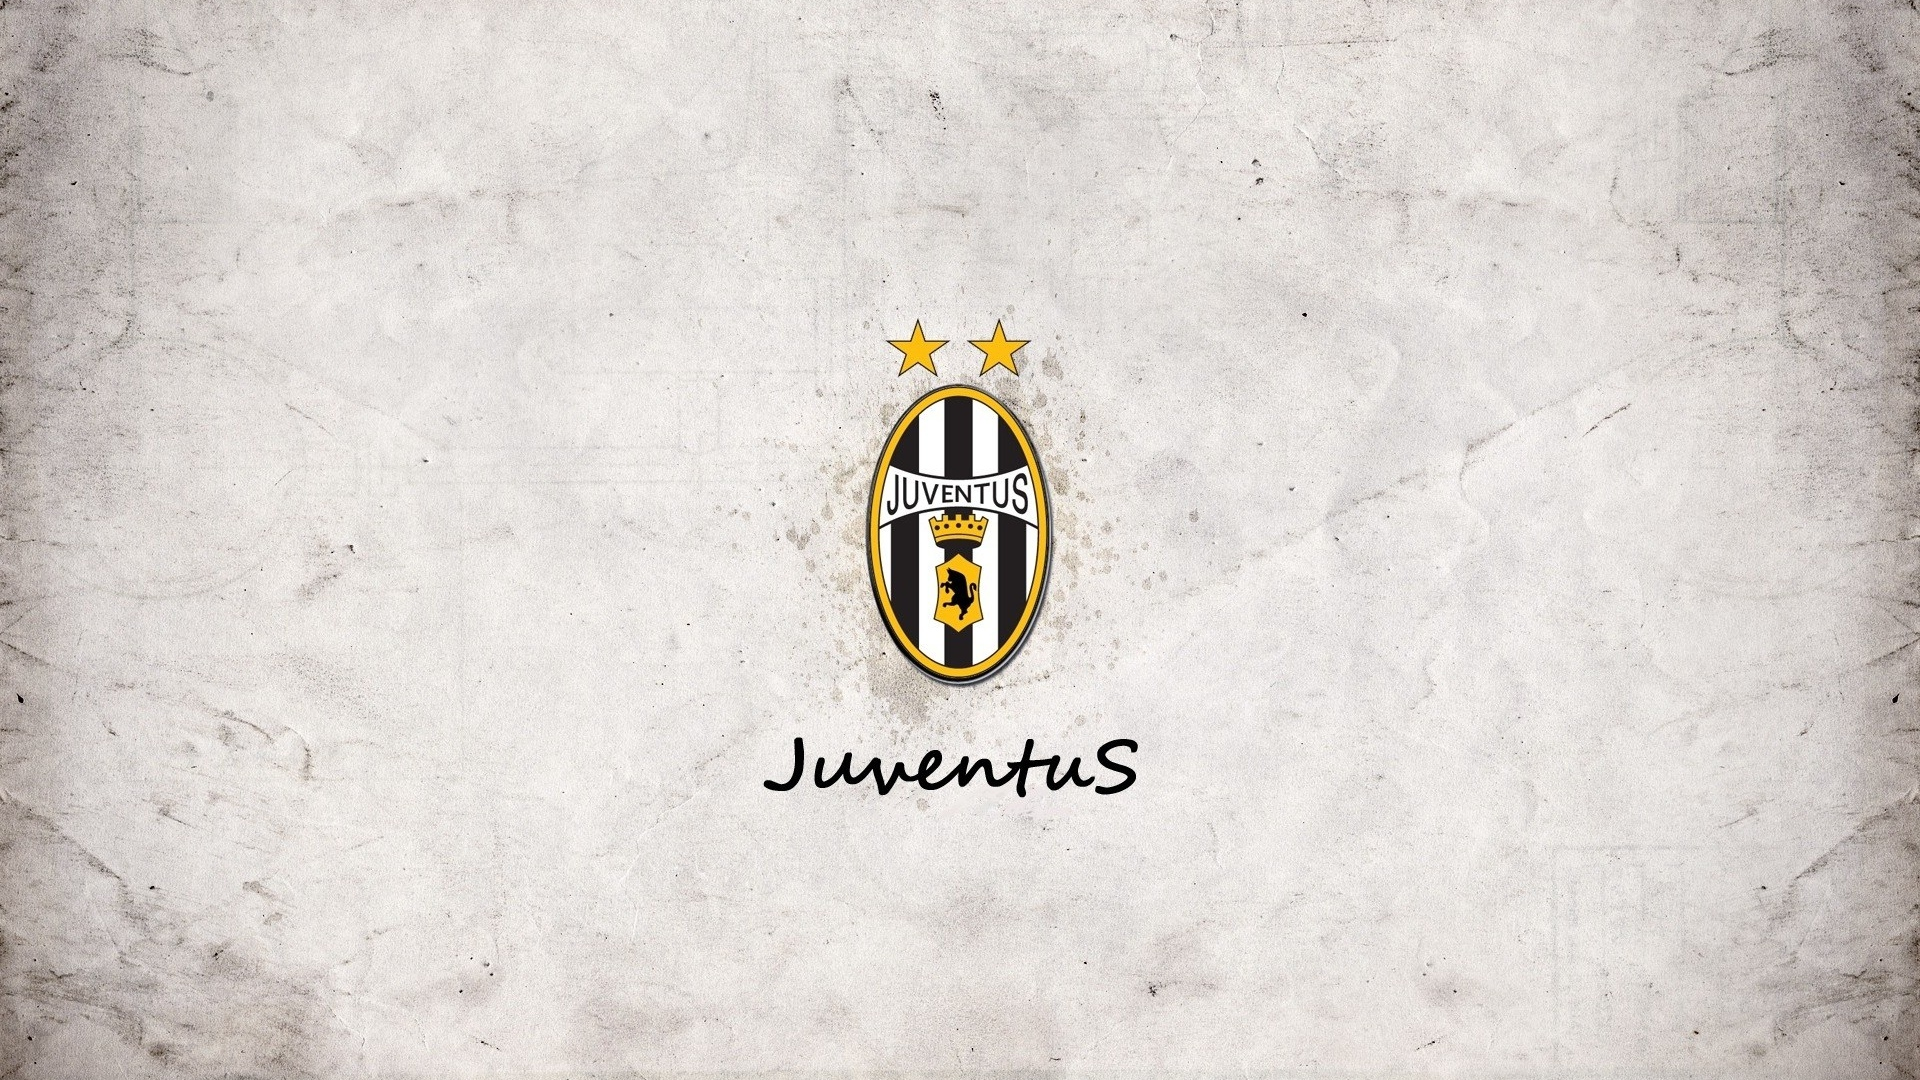 Logo Juventus Symbol Football Command 11304 1920x1080